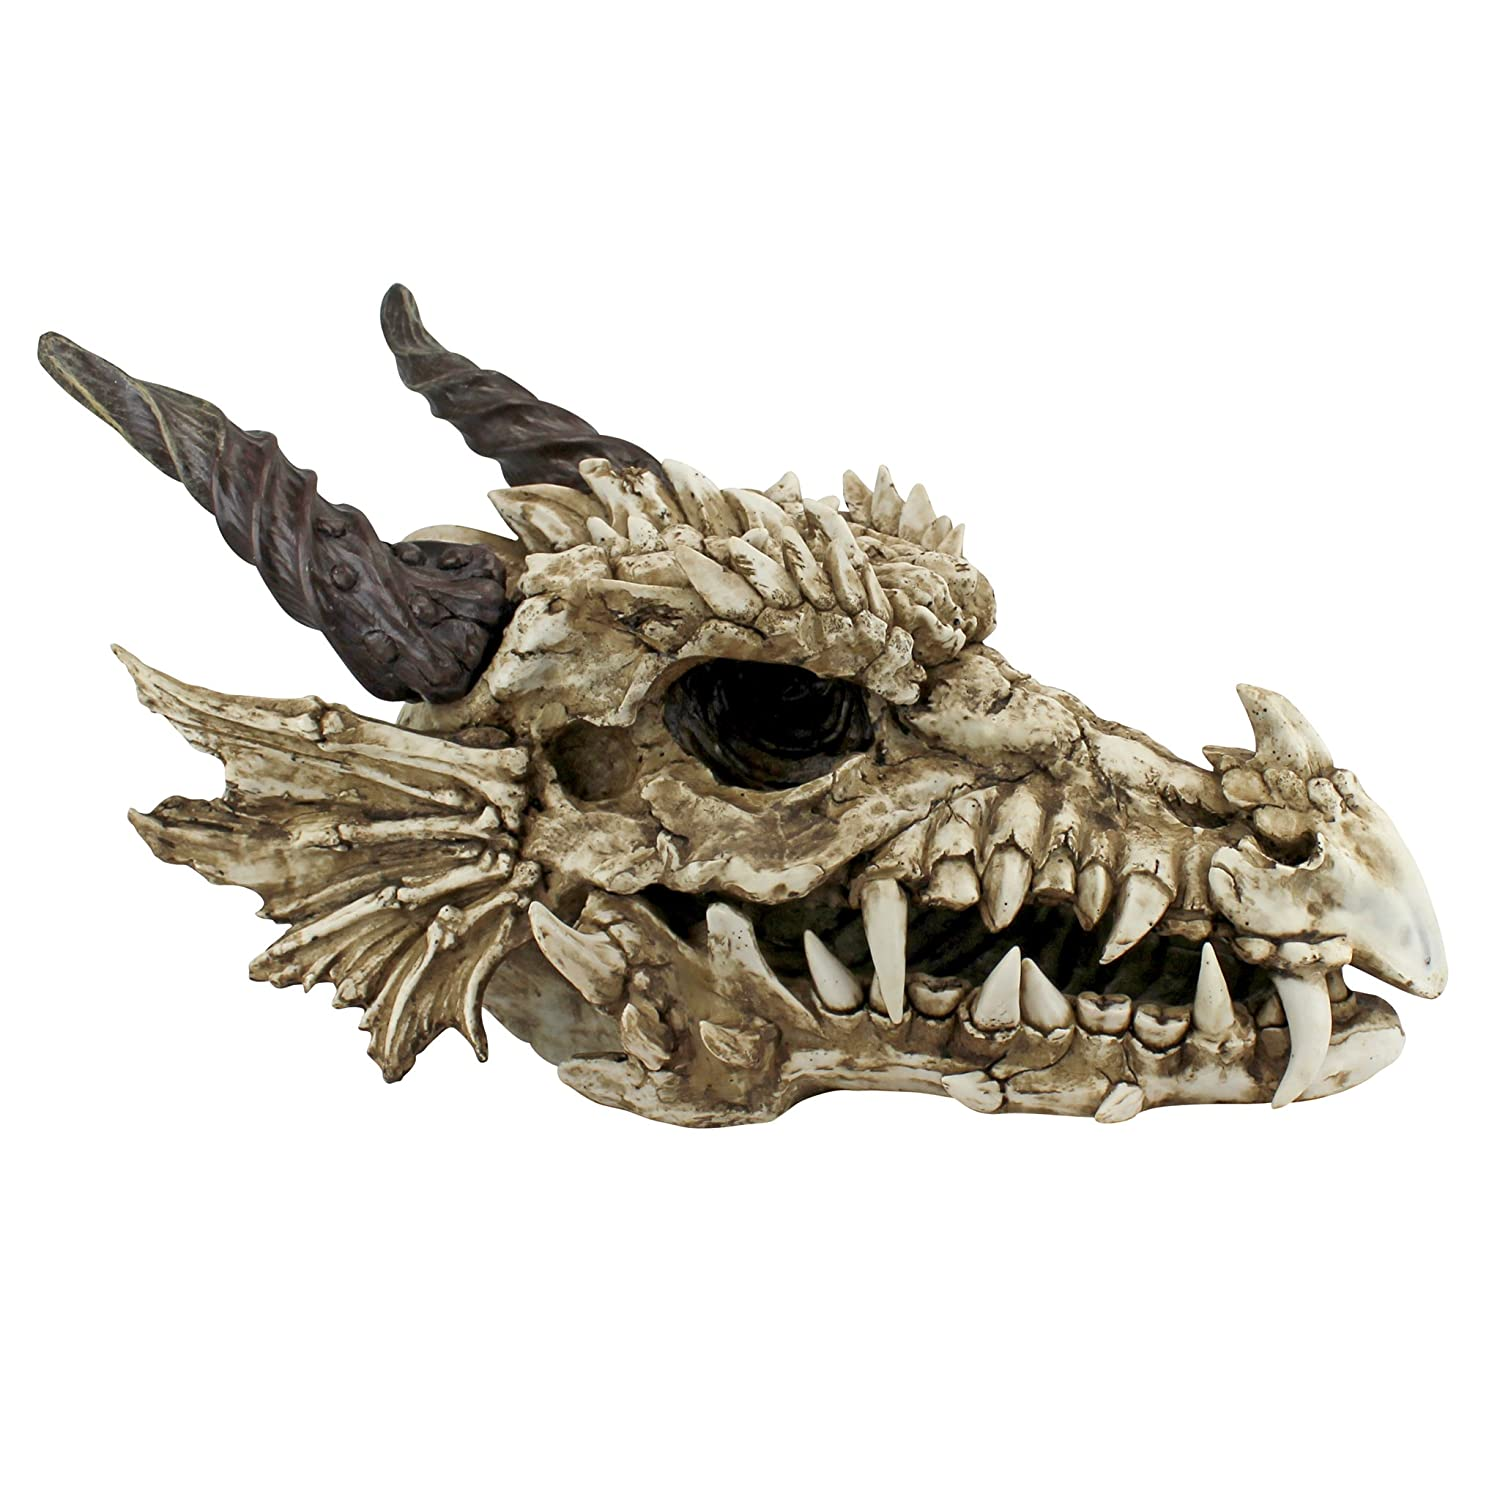 Dragon and skull pictures